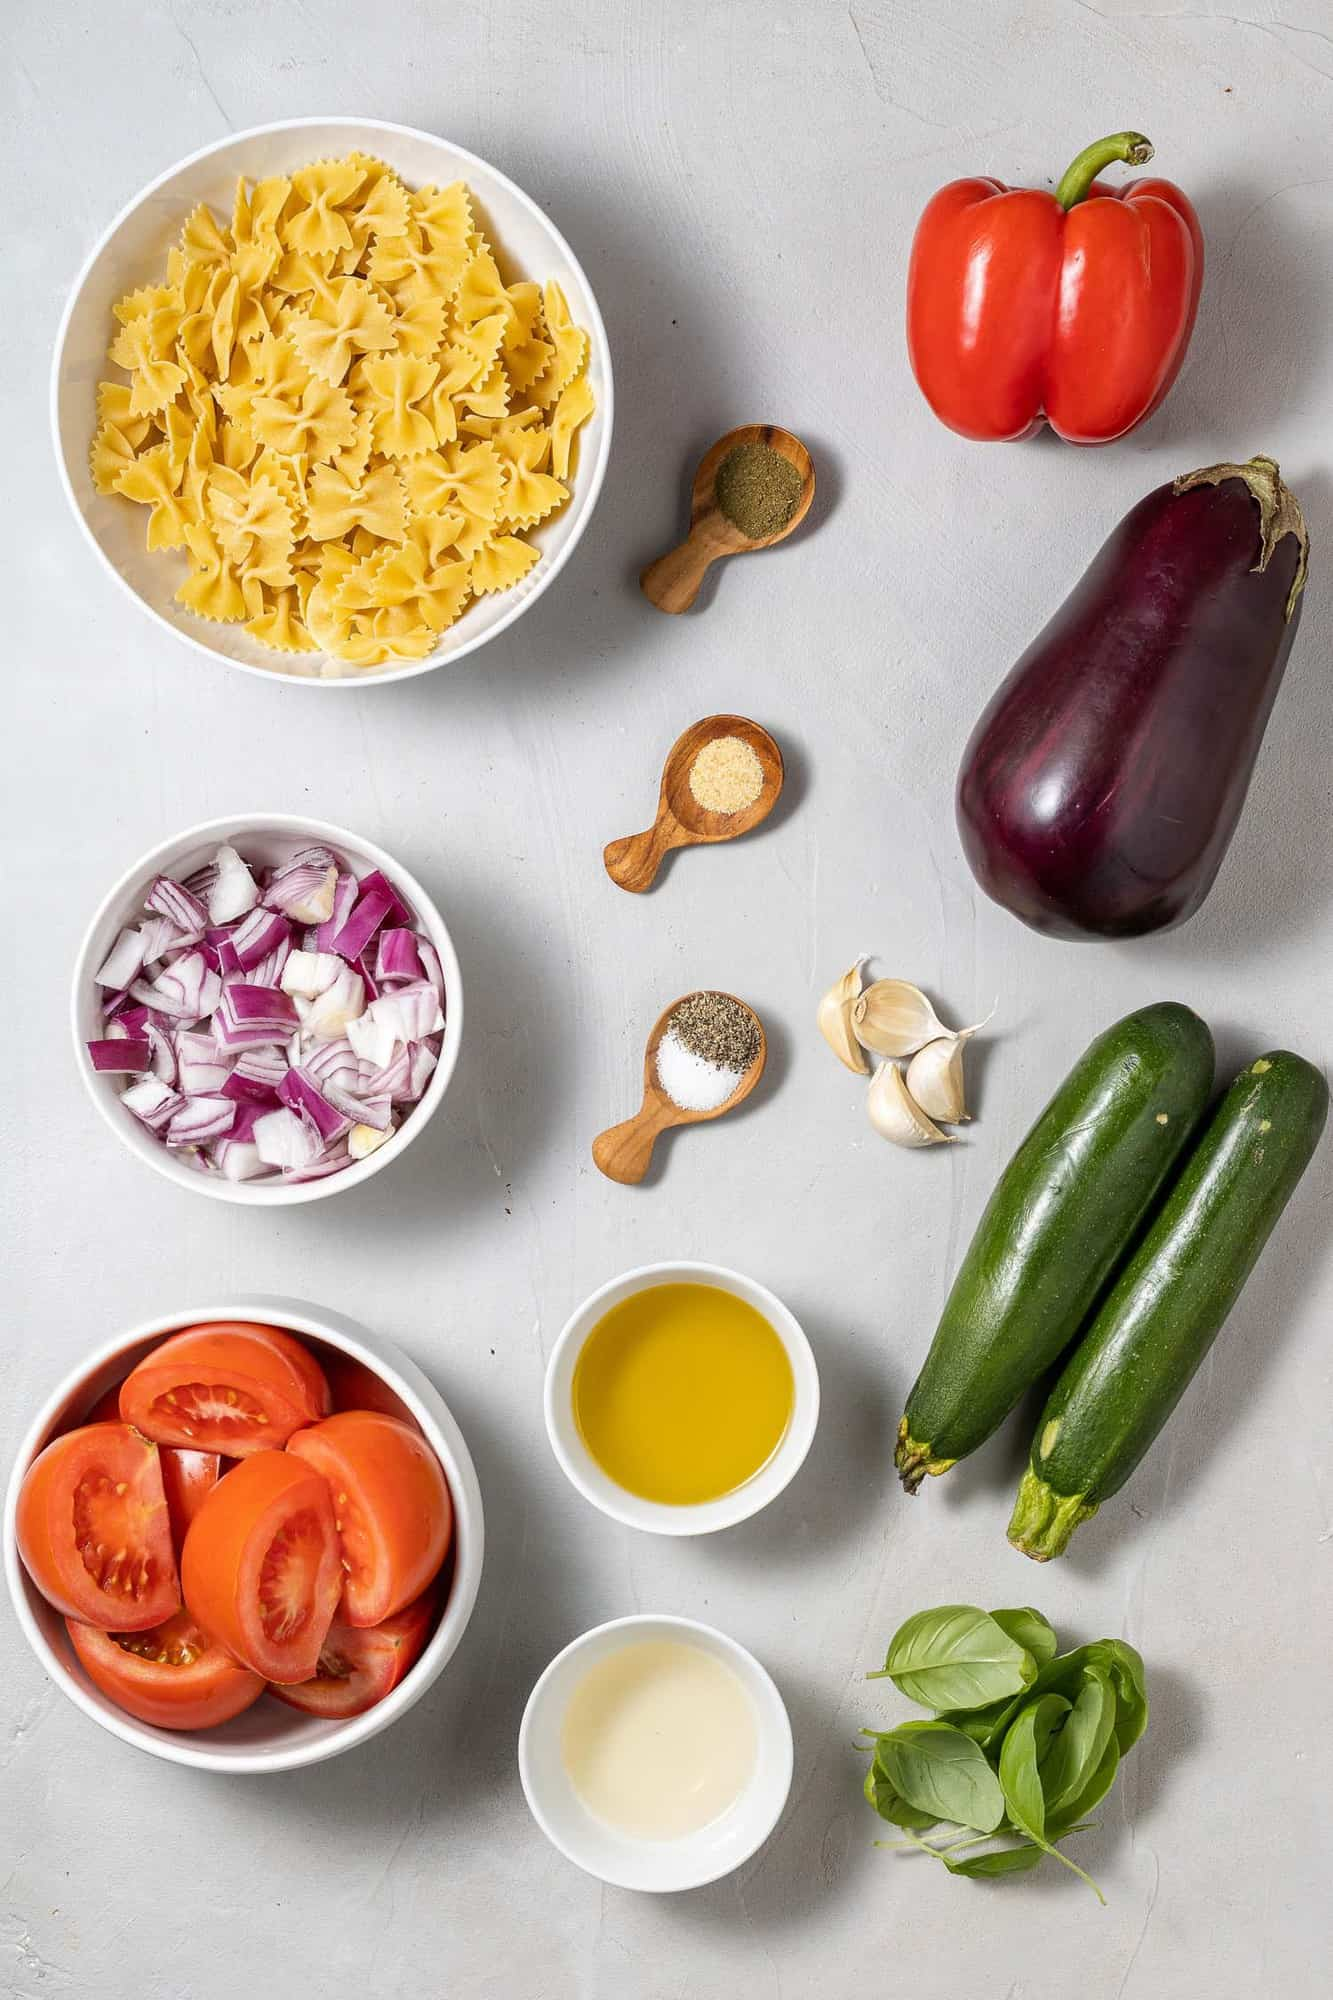 Fresh vegetables, cooked pasta, and dressing ingredients on a gray background.